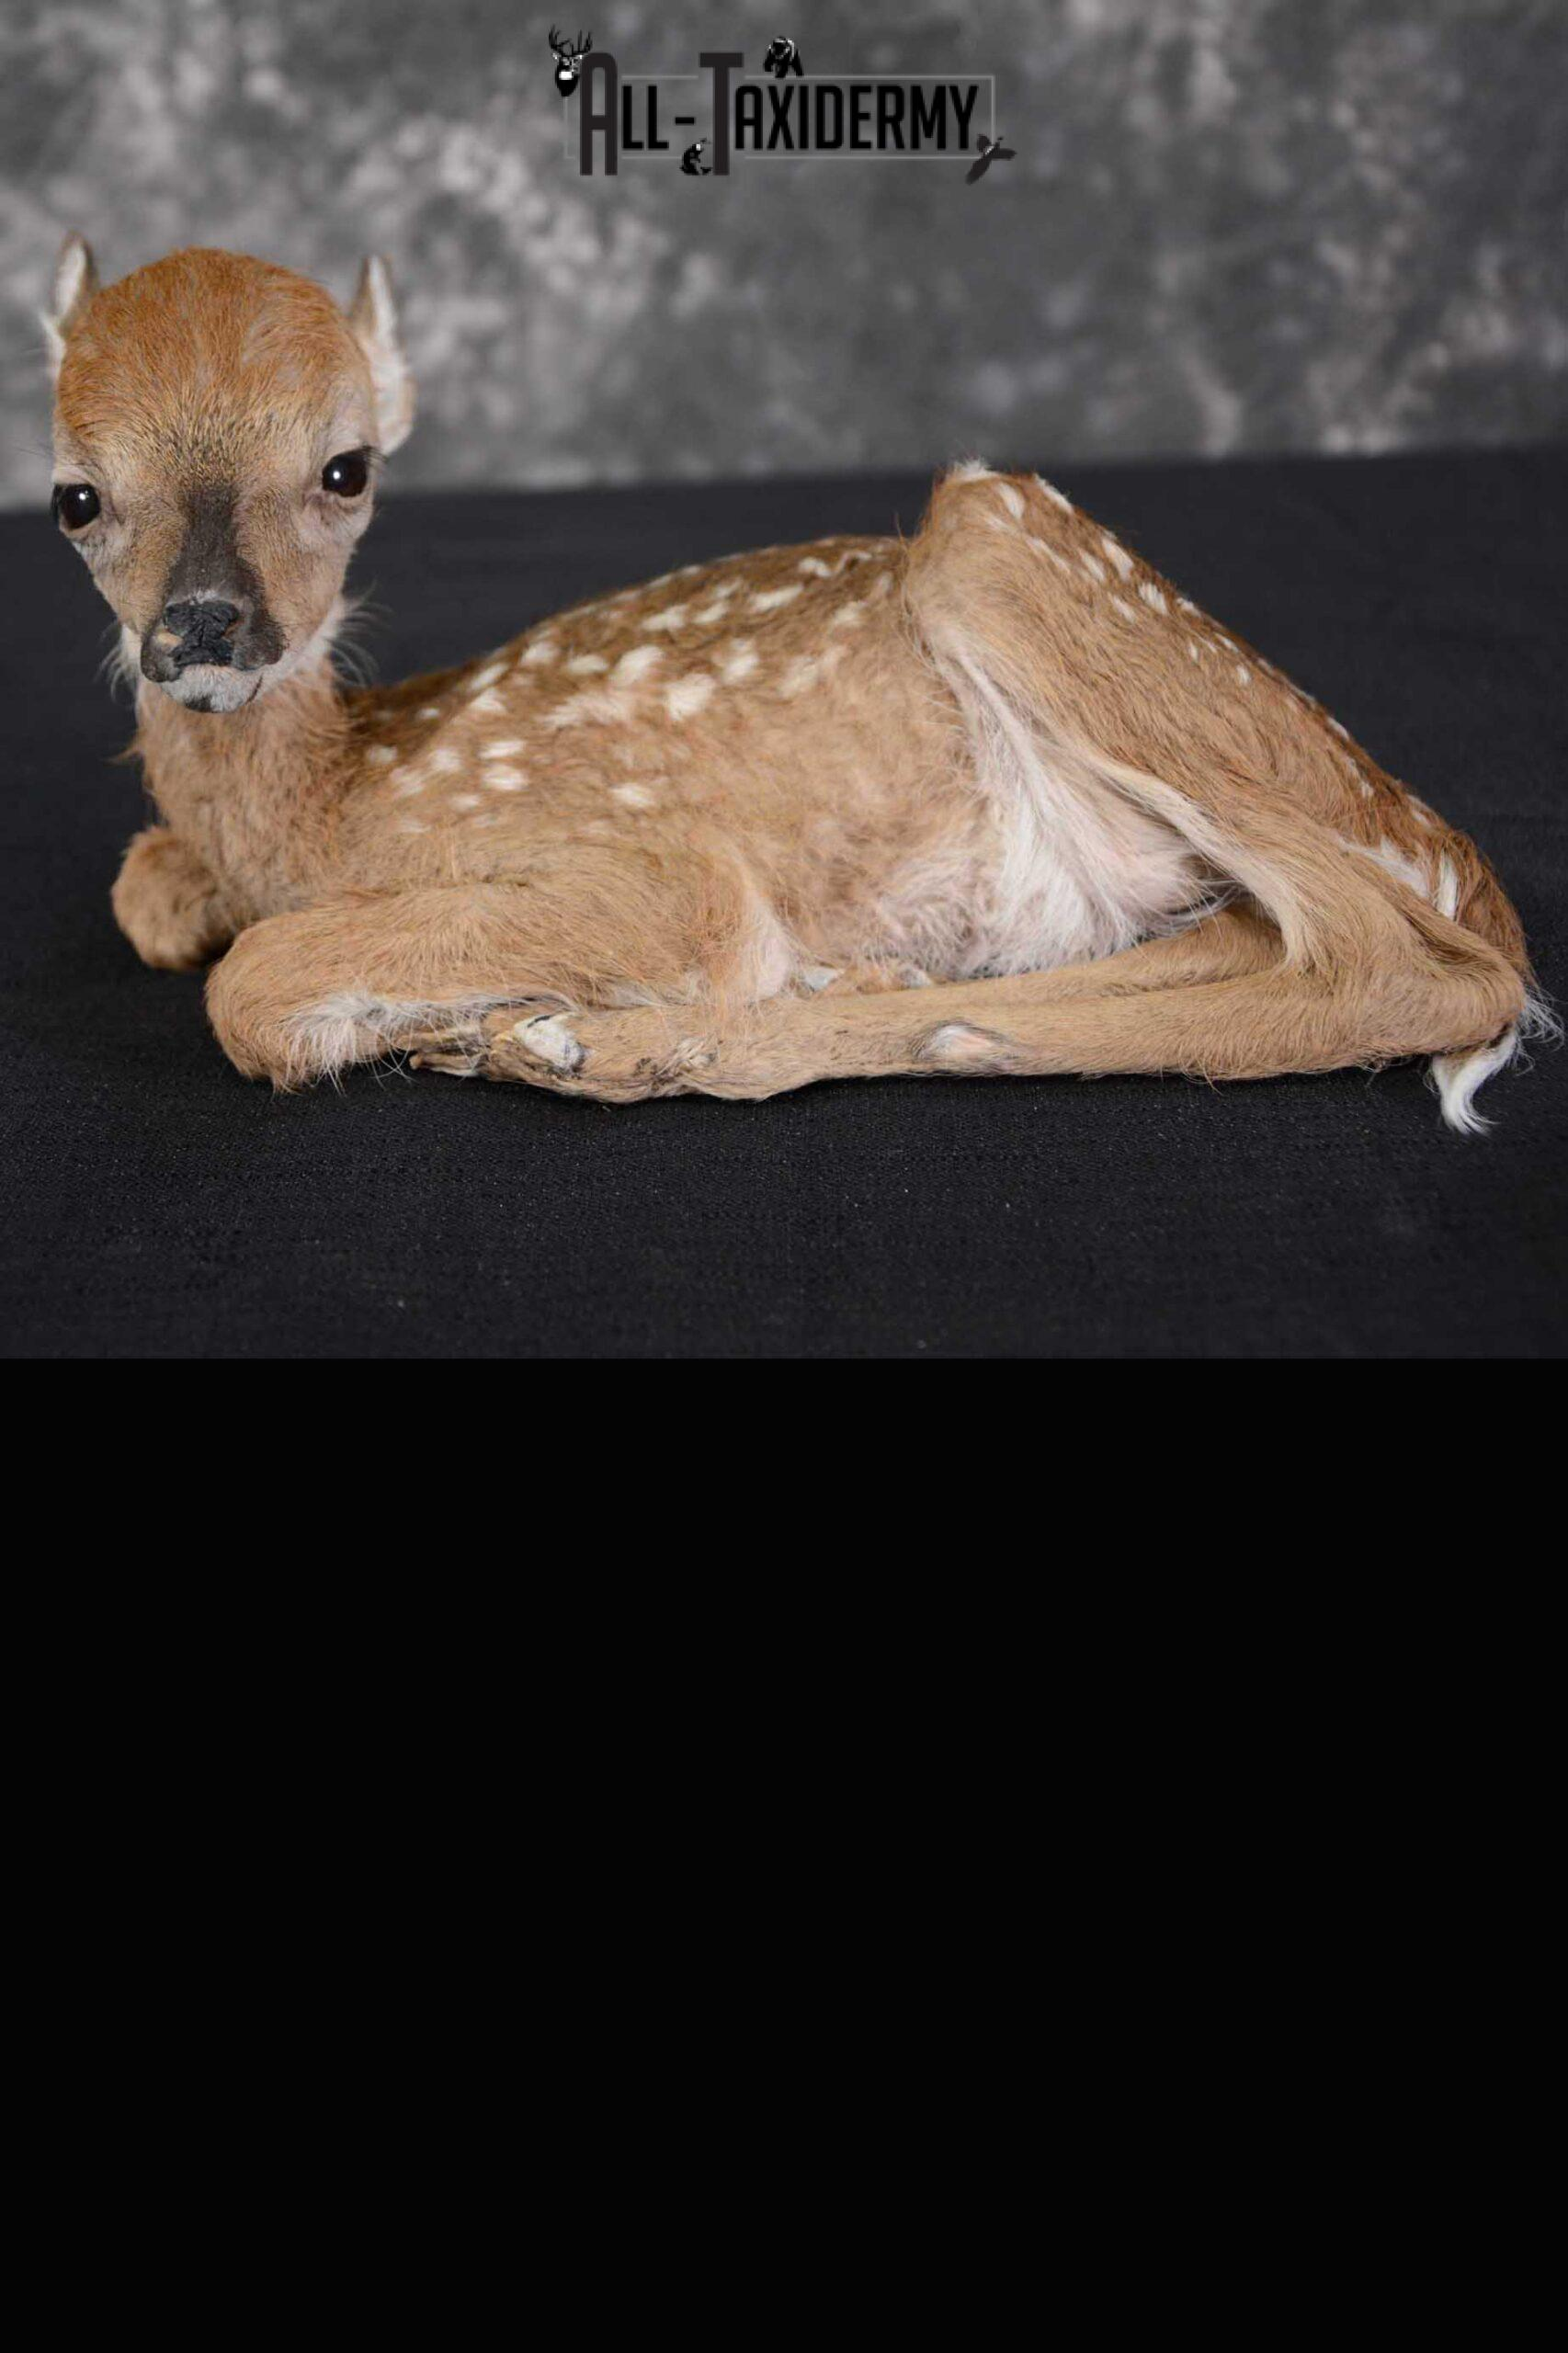 Whitetail deer extra small Fawn taxidermy full body mount SKU 1643